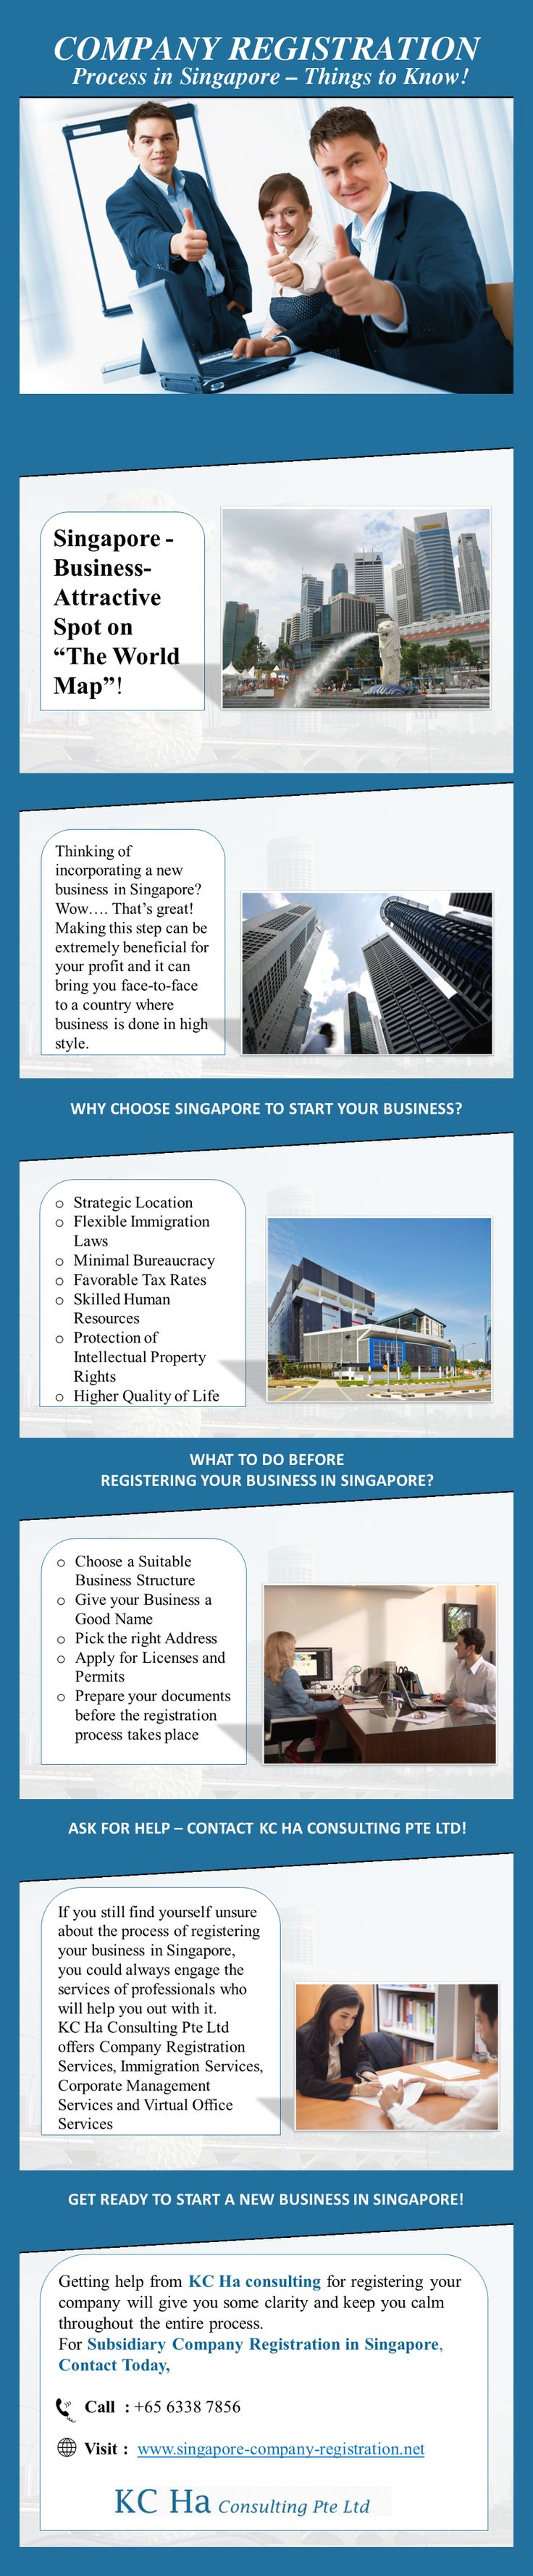 Subsidiary Company Registration - Things to Know! - If you wish to start and strengthen your business in Singapore, KC Ha Consulting Pte Ltd are here to help you with your Business/Company Registration. Visit http://www.singapore-company-registration.net